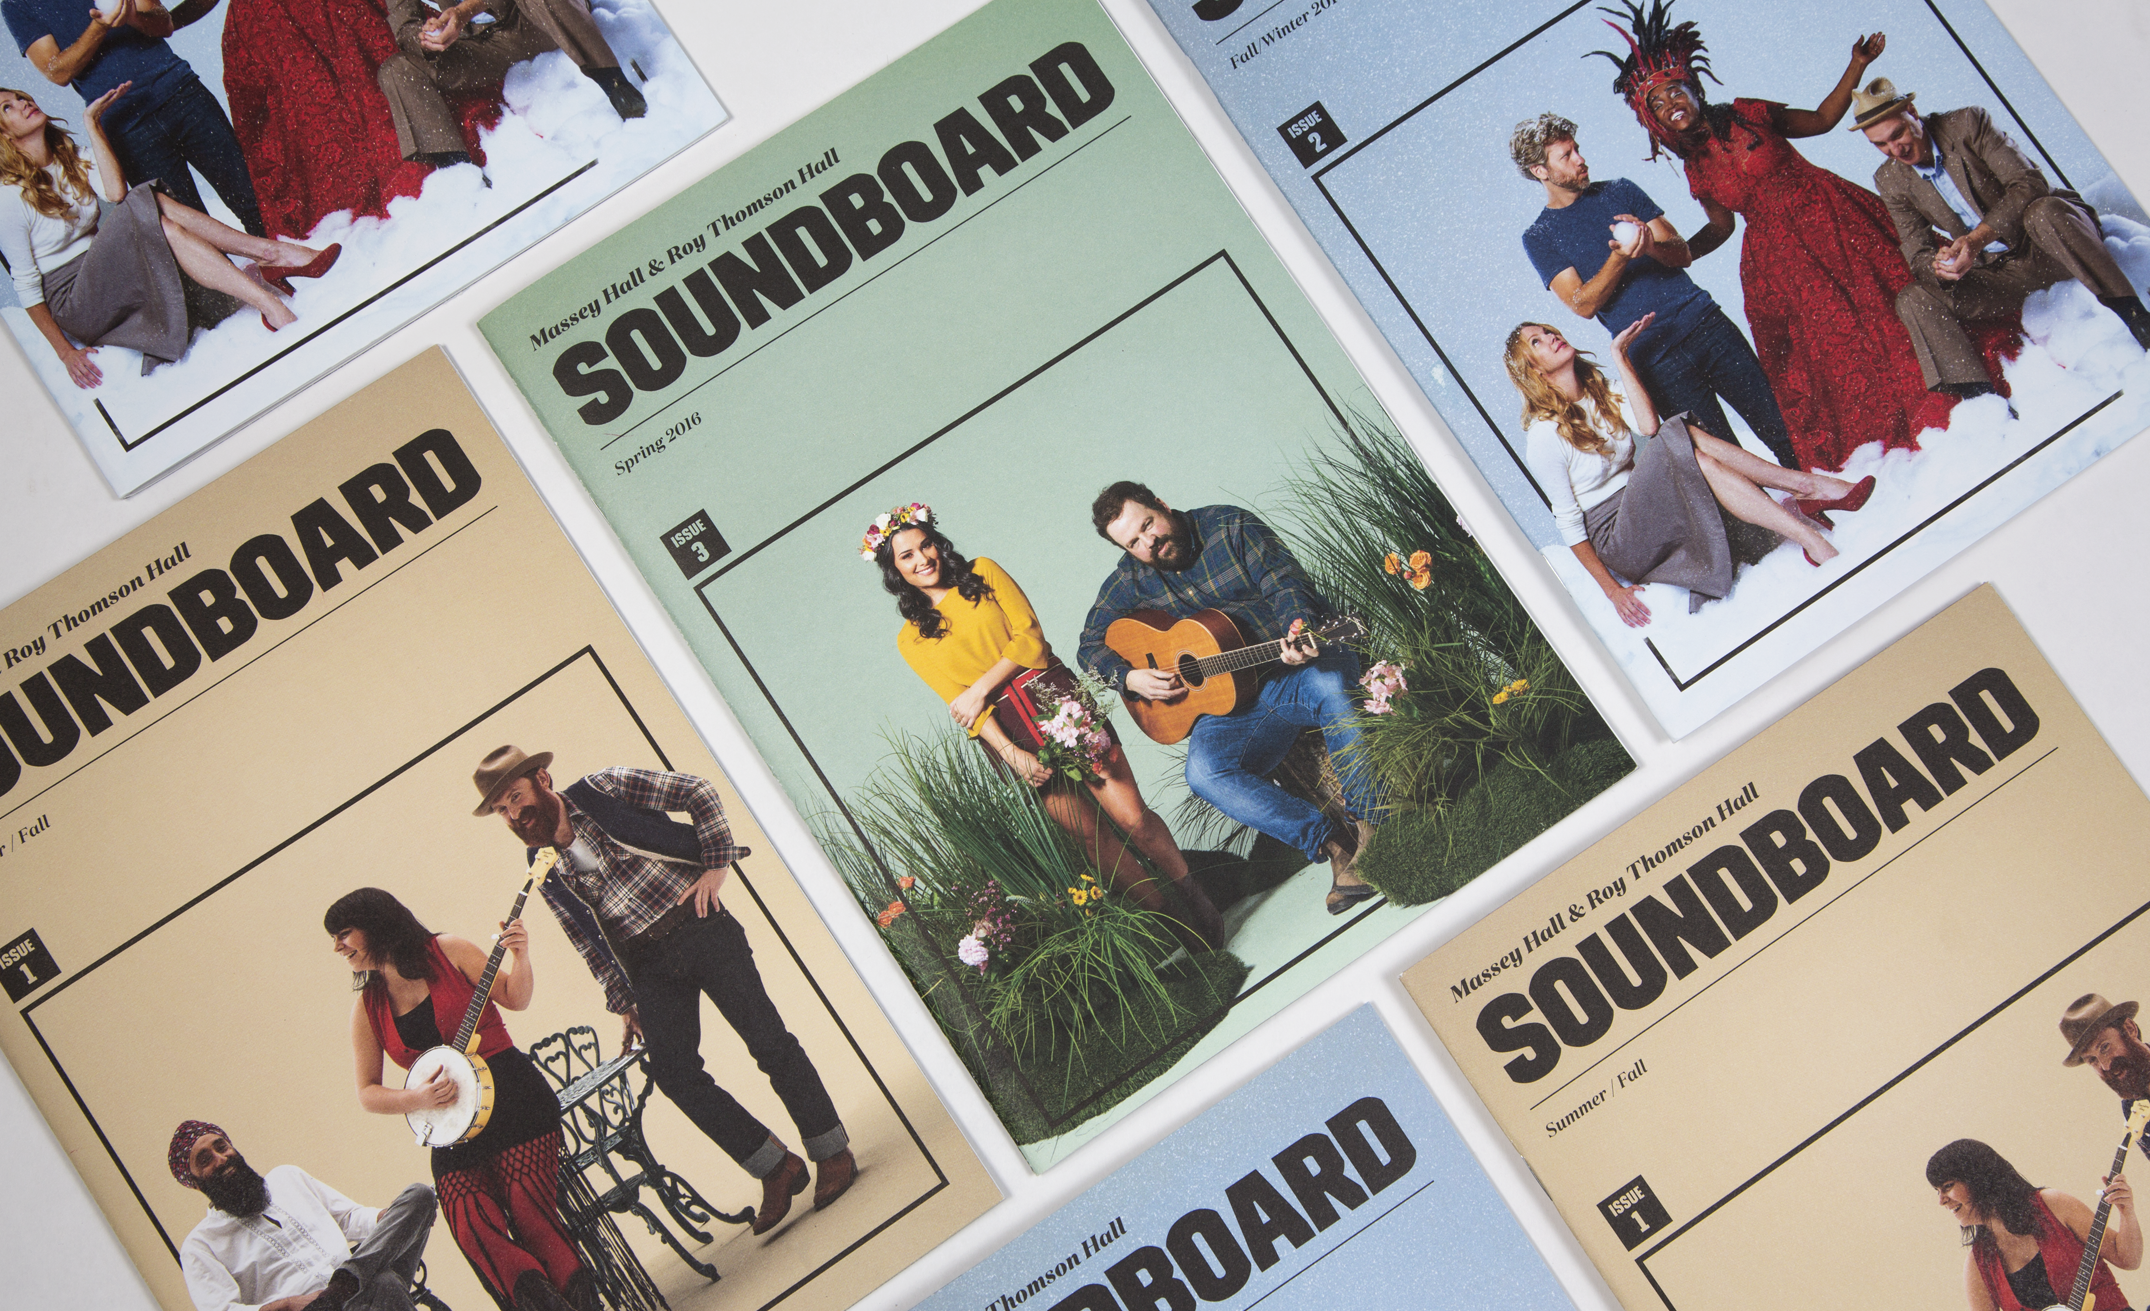 Soundboard Magazine Cover